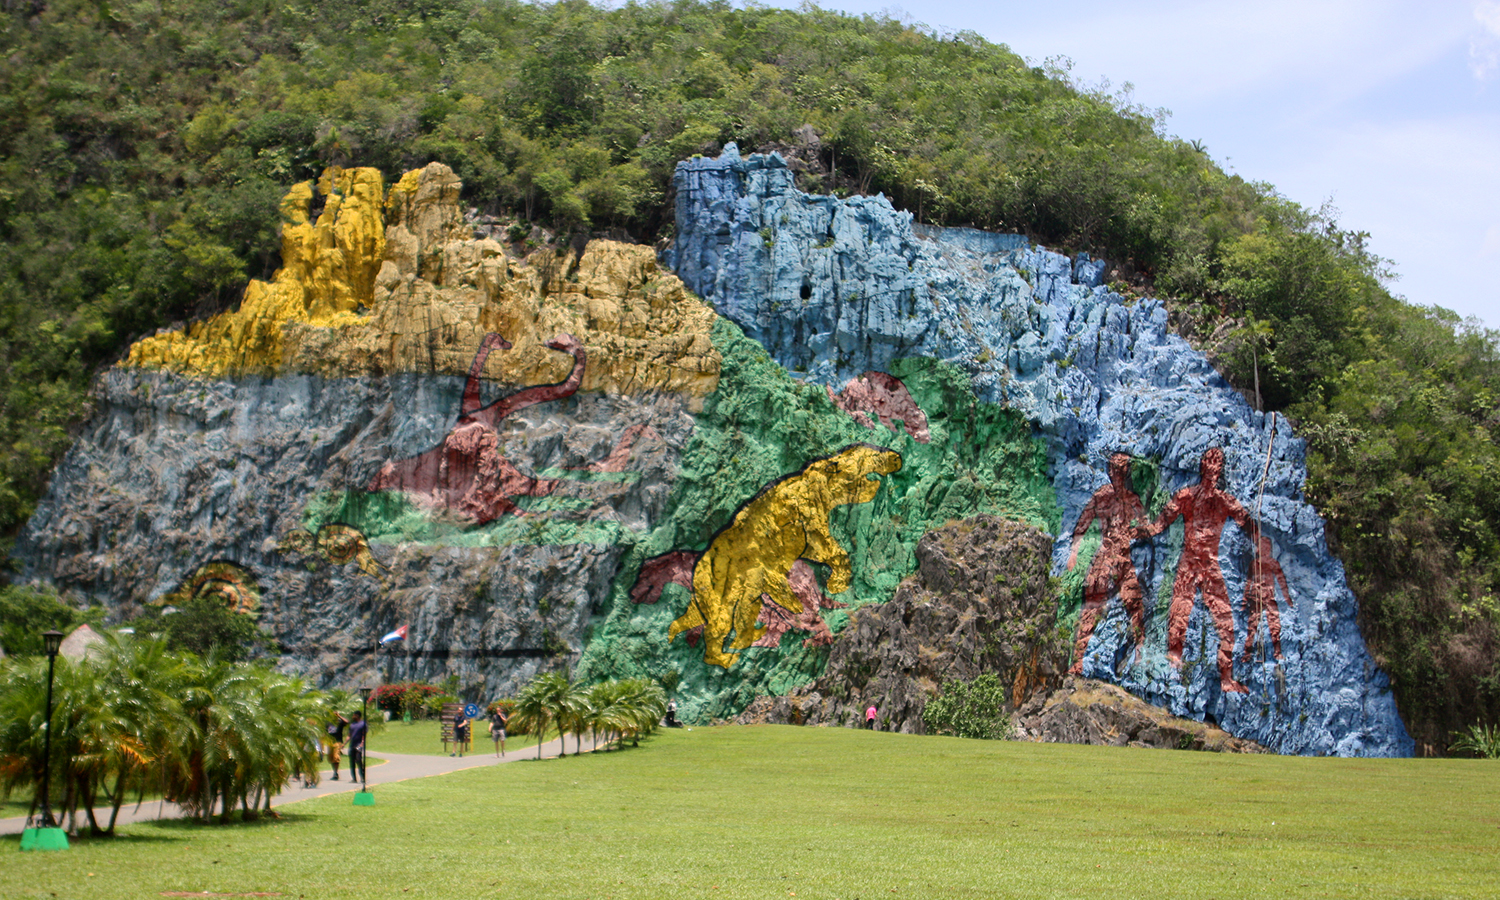 A mural depicting prehistoric creatures whose remains were dug up at this location, is painted on the side of a mountain in Viñales.